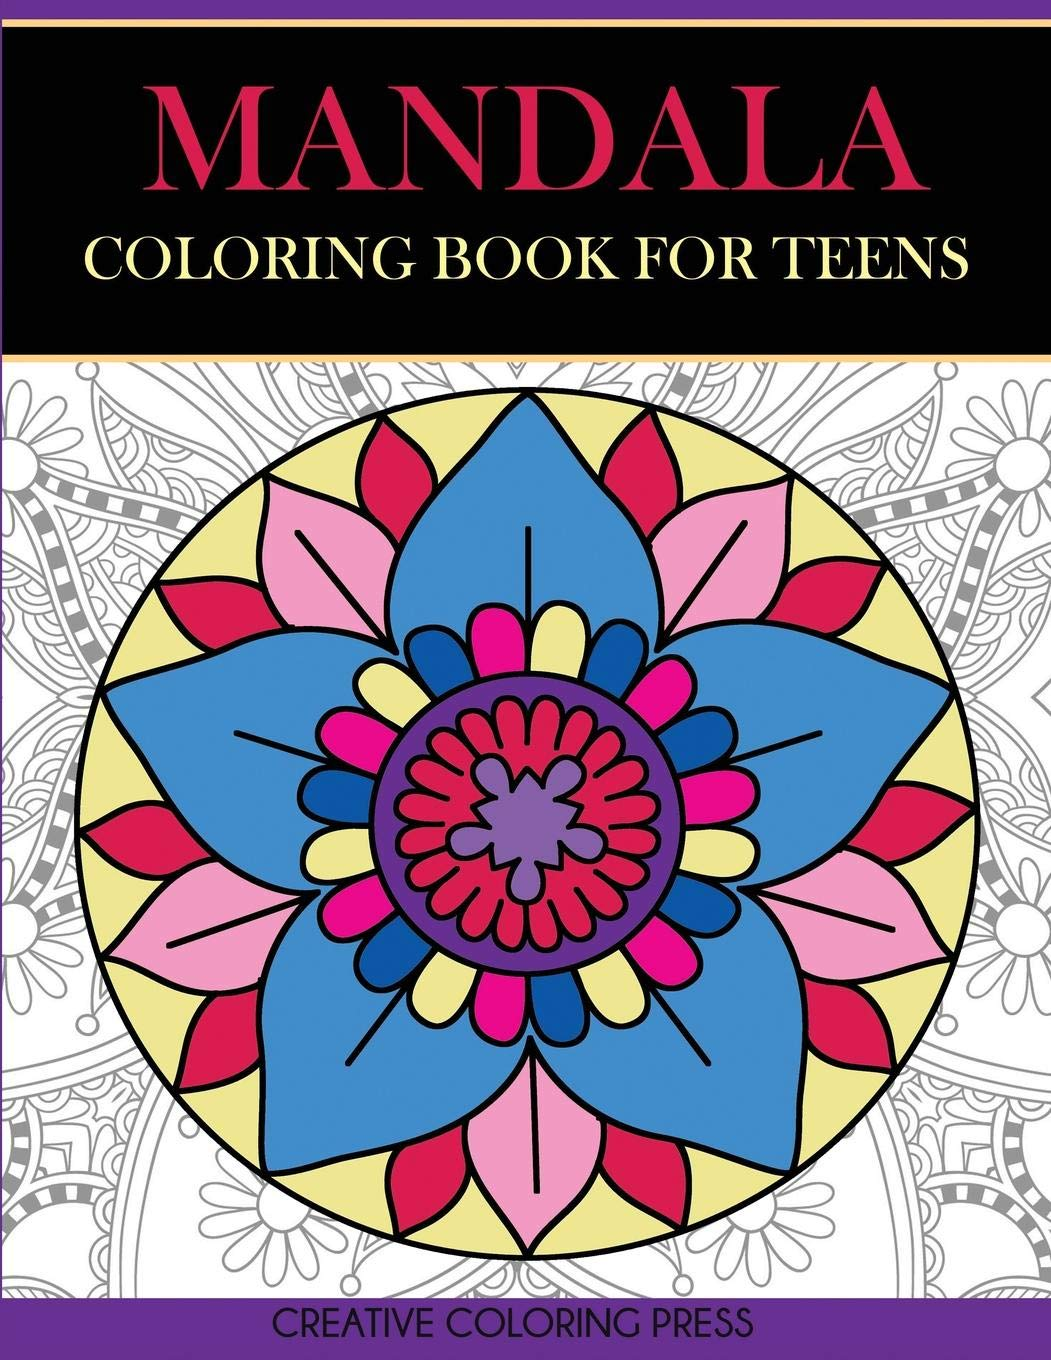 Amazon.com: Mandala Coloring Book For Teens: Get Creative, Relax